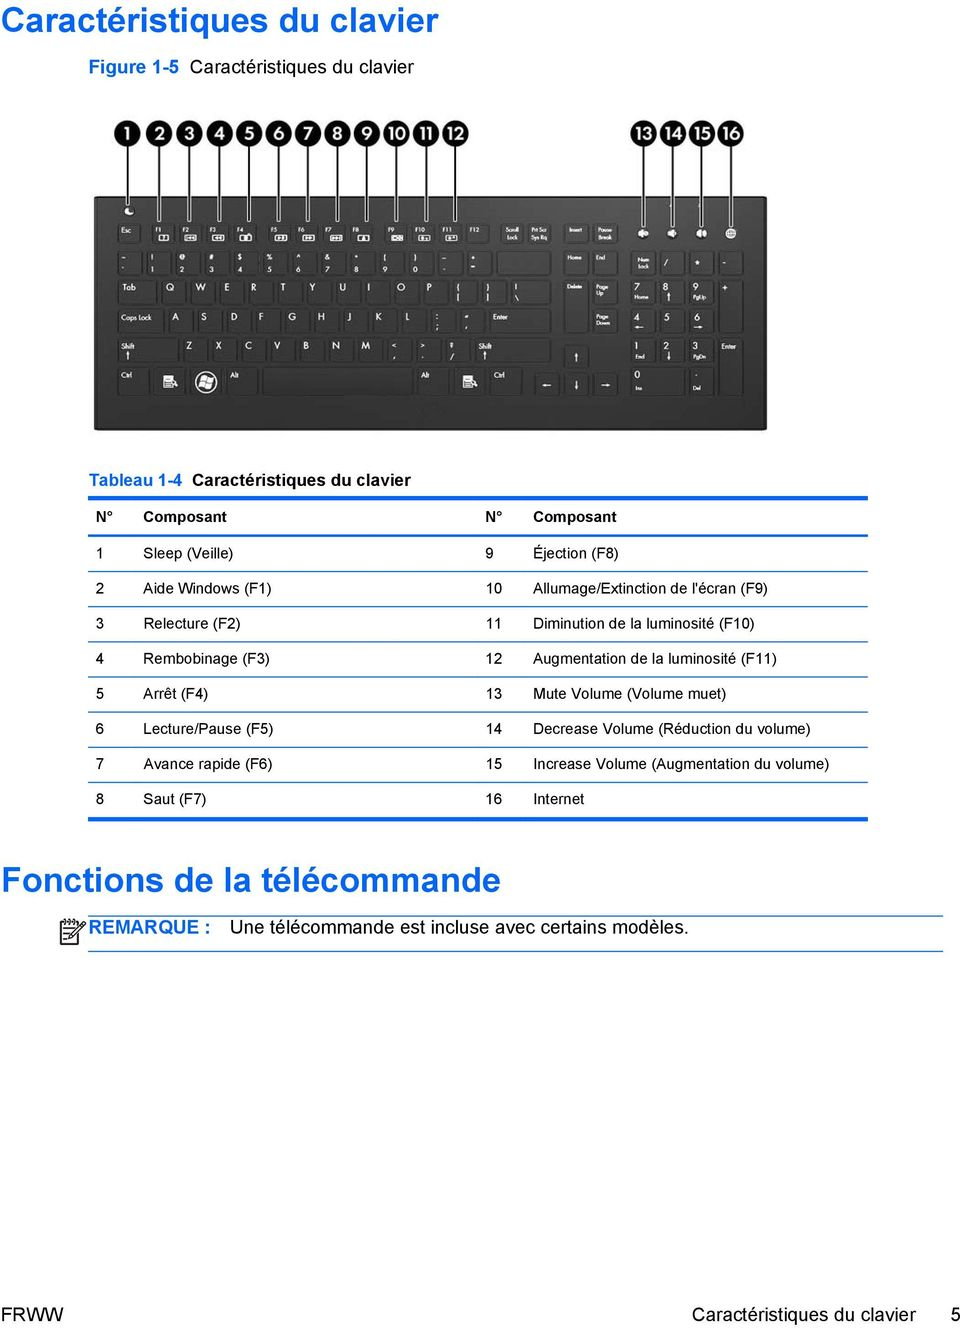 luminosité (F11) 5 Arrêt (F4) 13 Mute Volume (Volume muet) 6 Lecture/Pause (F5) 14 Decrease Volume (Réduction du volume) 7 Avance rapide (F6) 15 Increase Volume